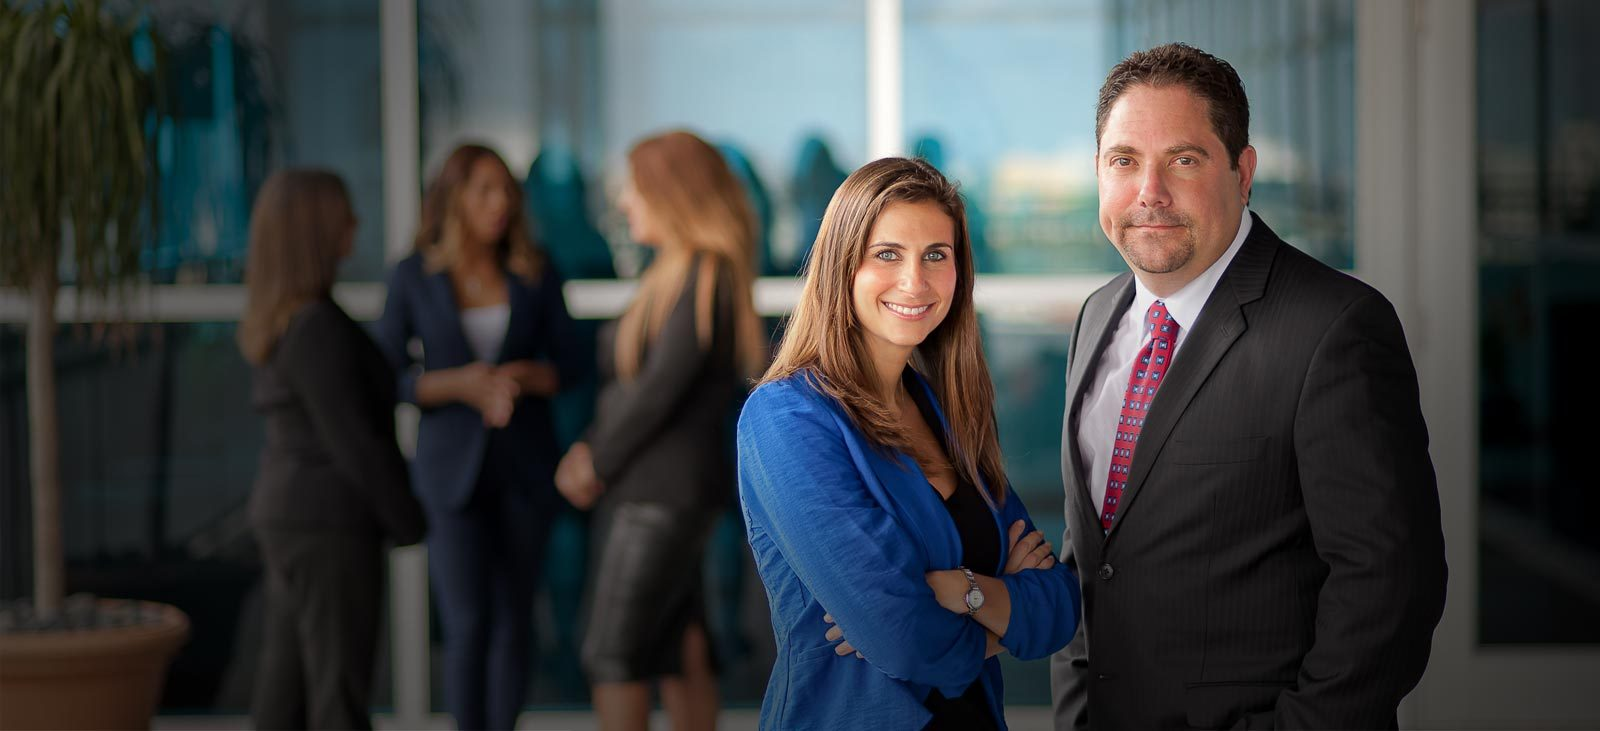 Miami Criminal Defense Attorneys Seitles & Litwin